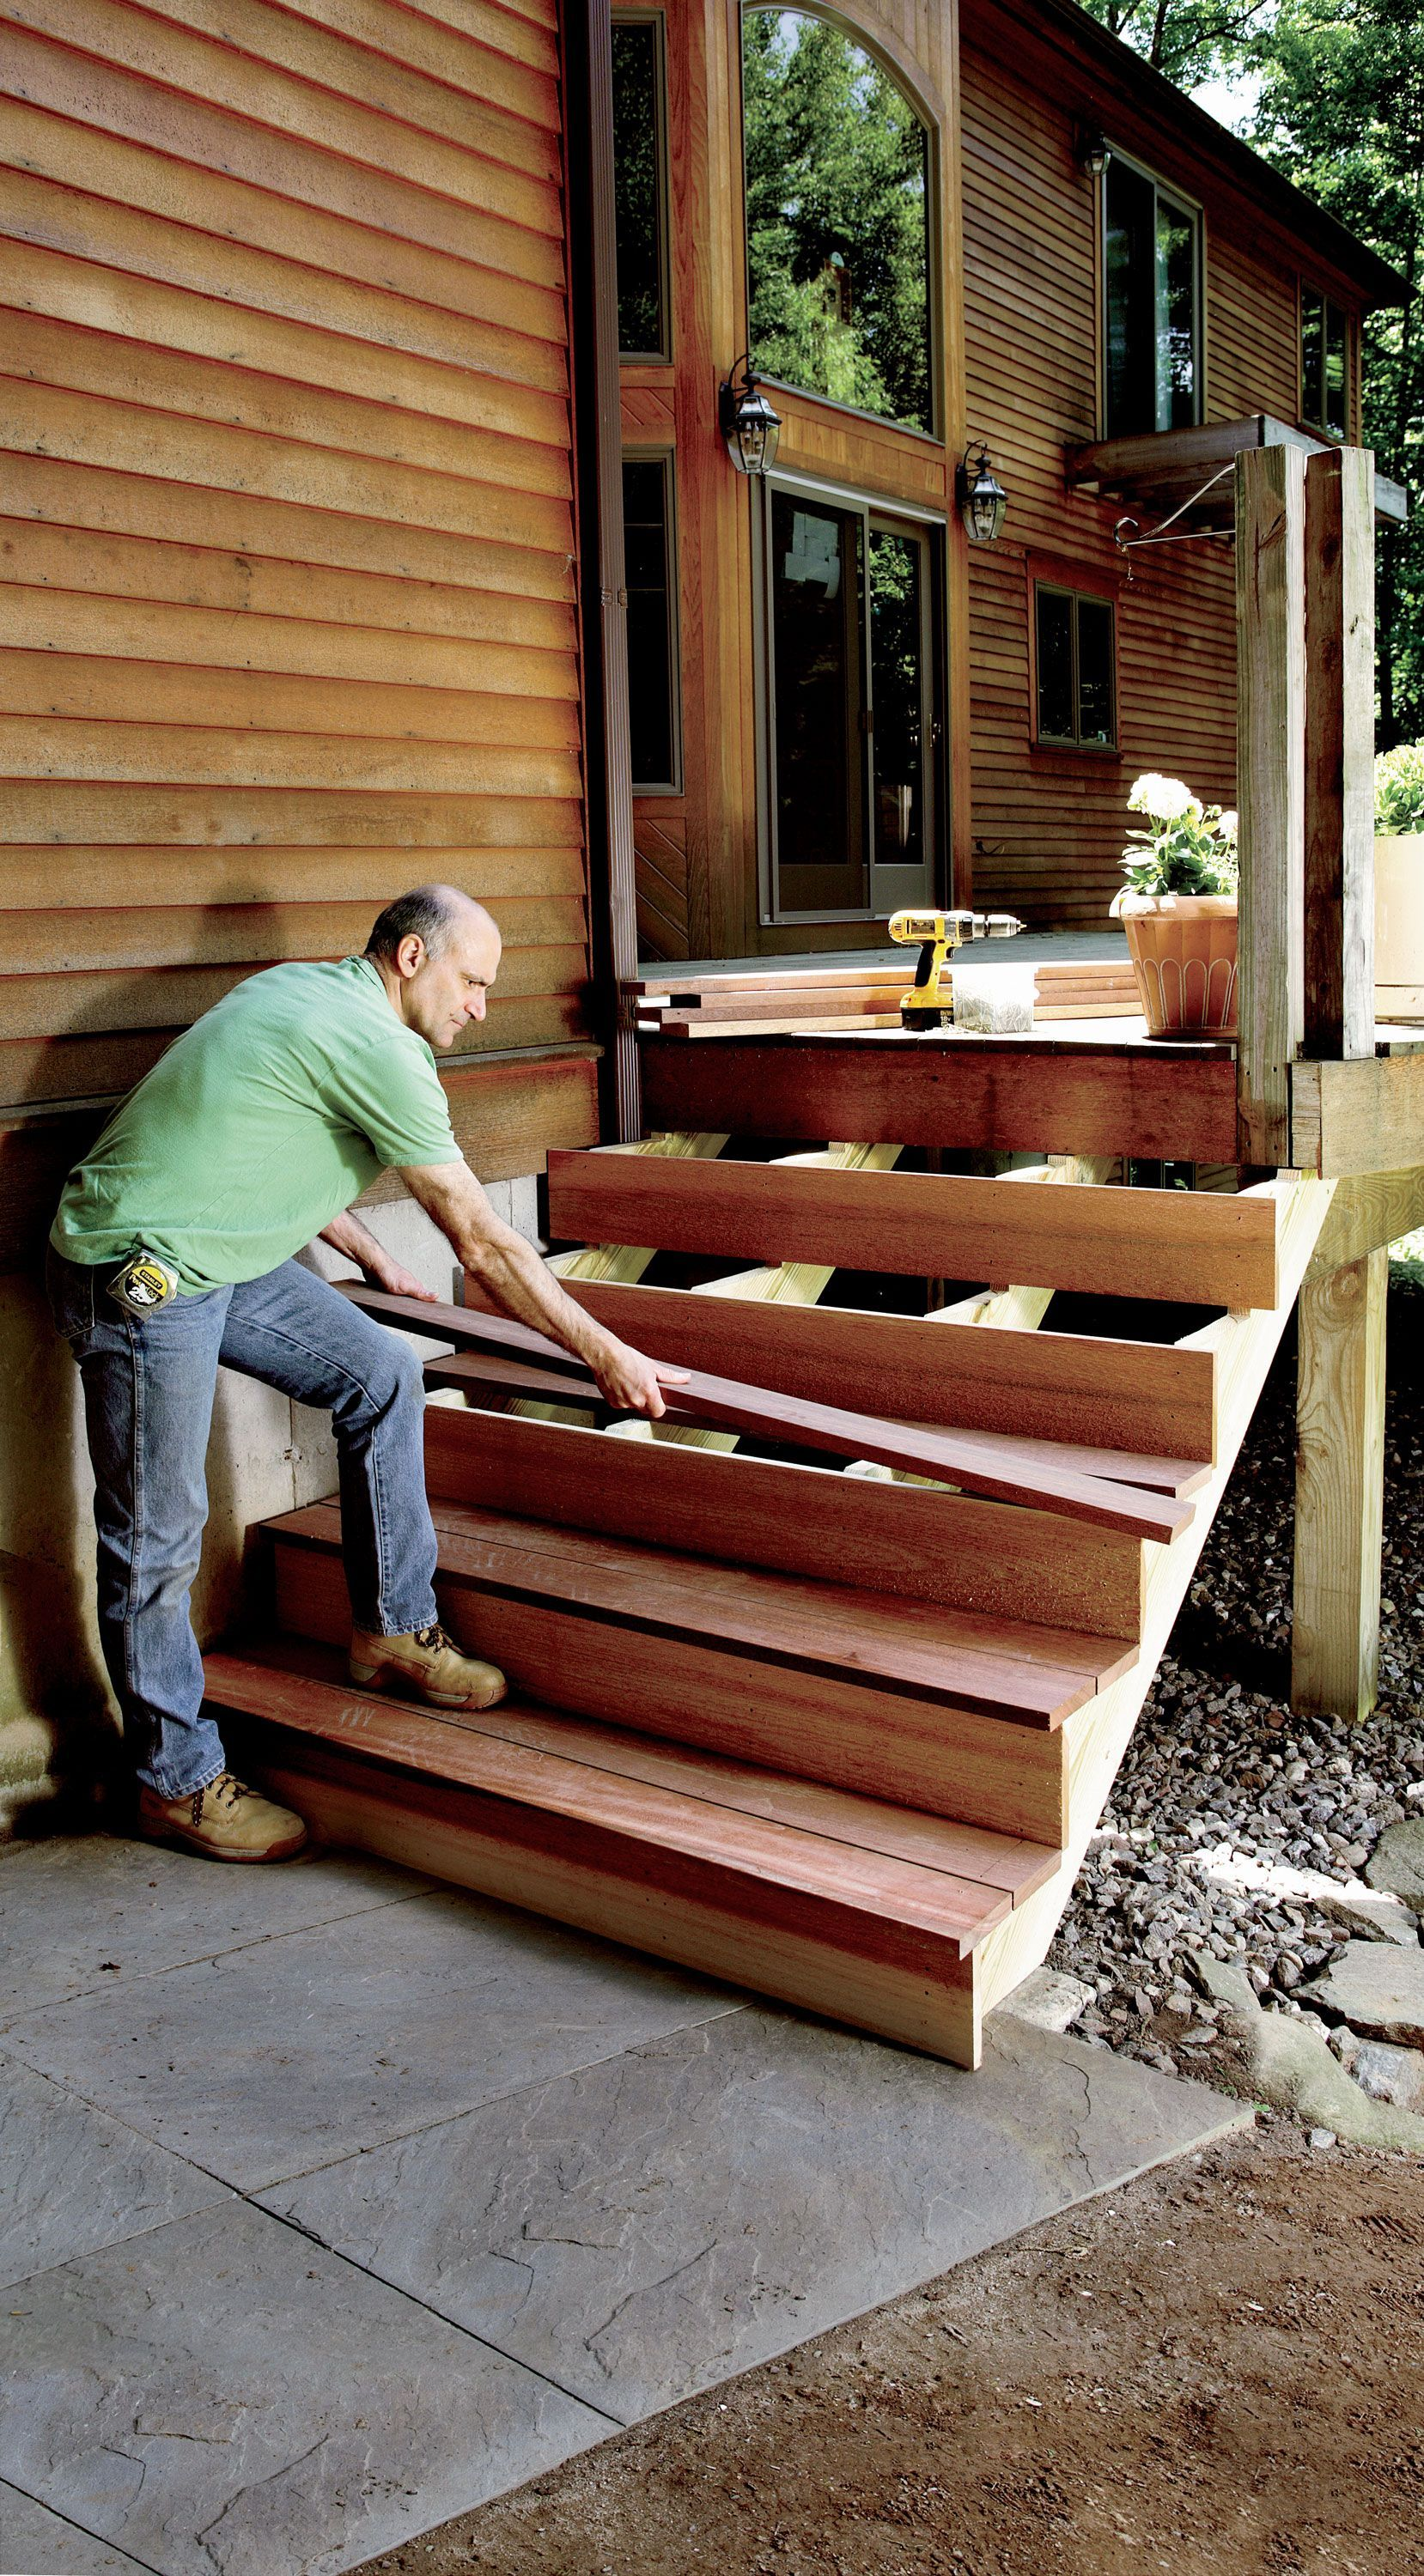 Building a staircase even a short one isnt simple it